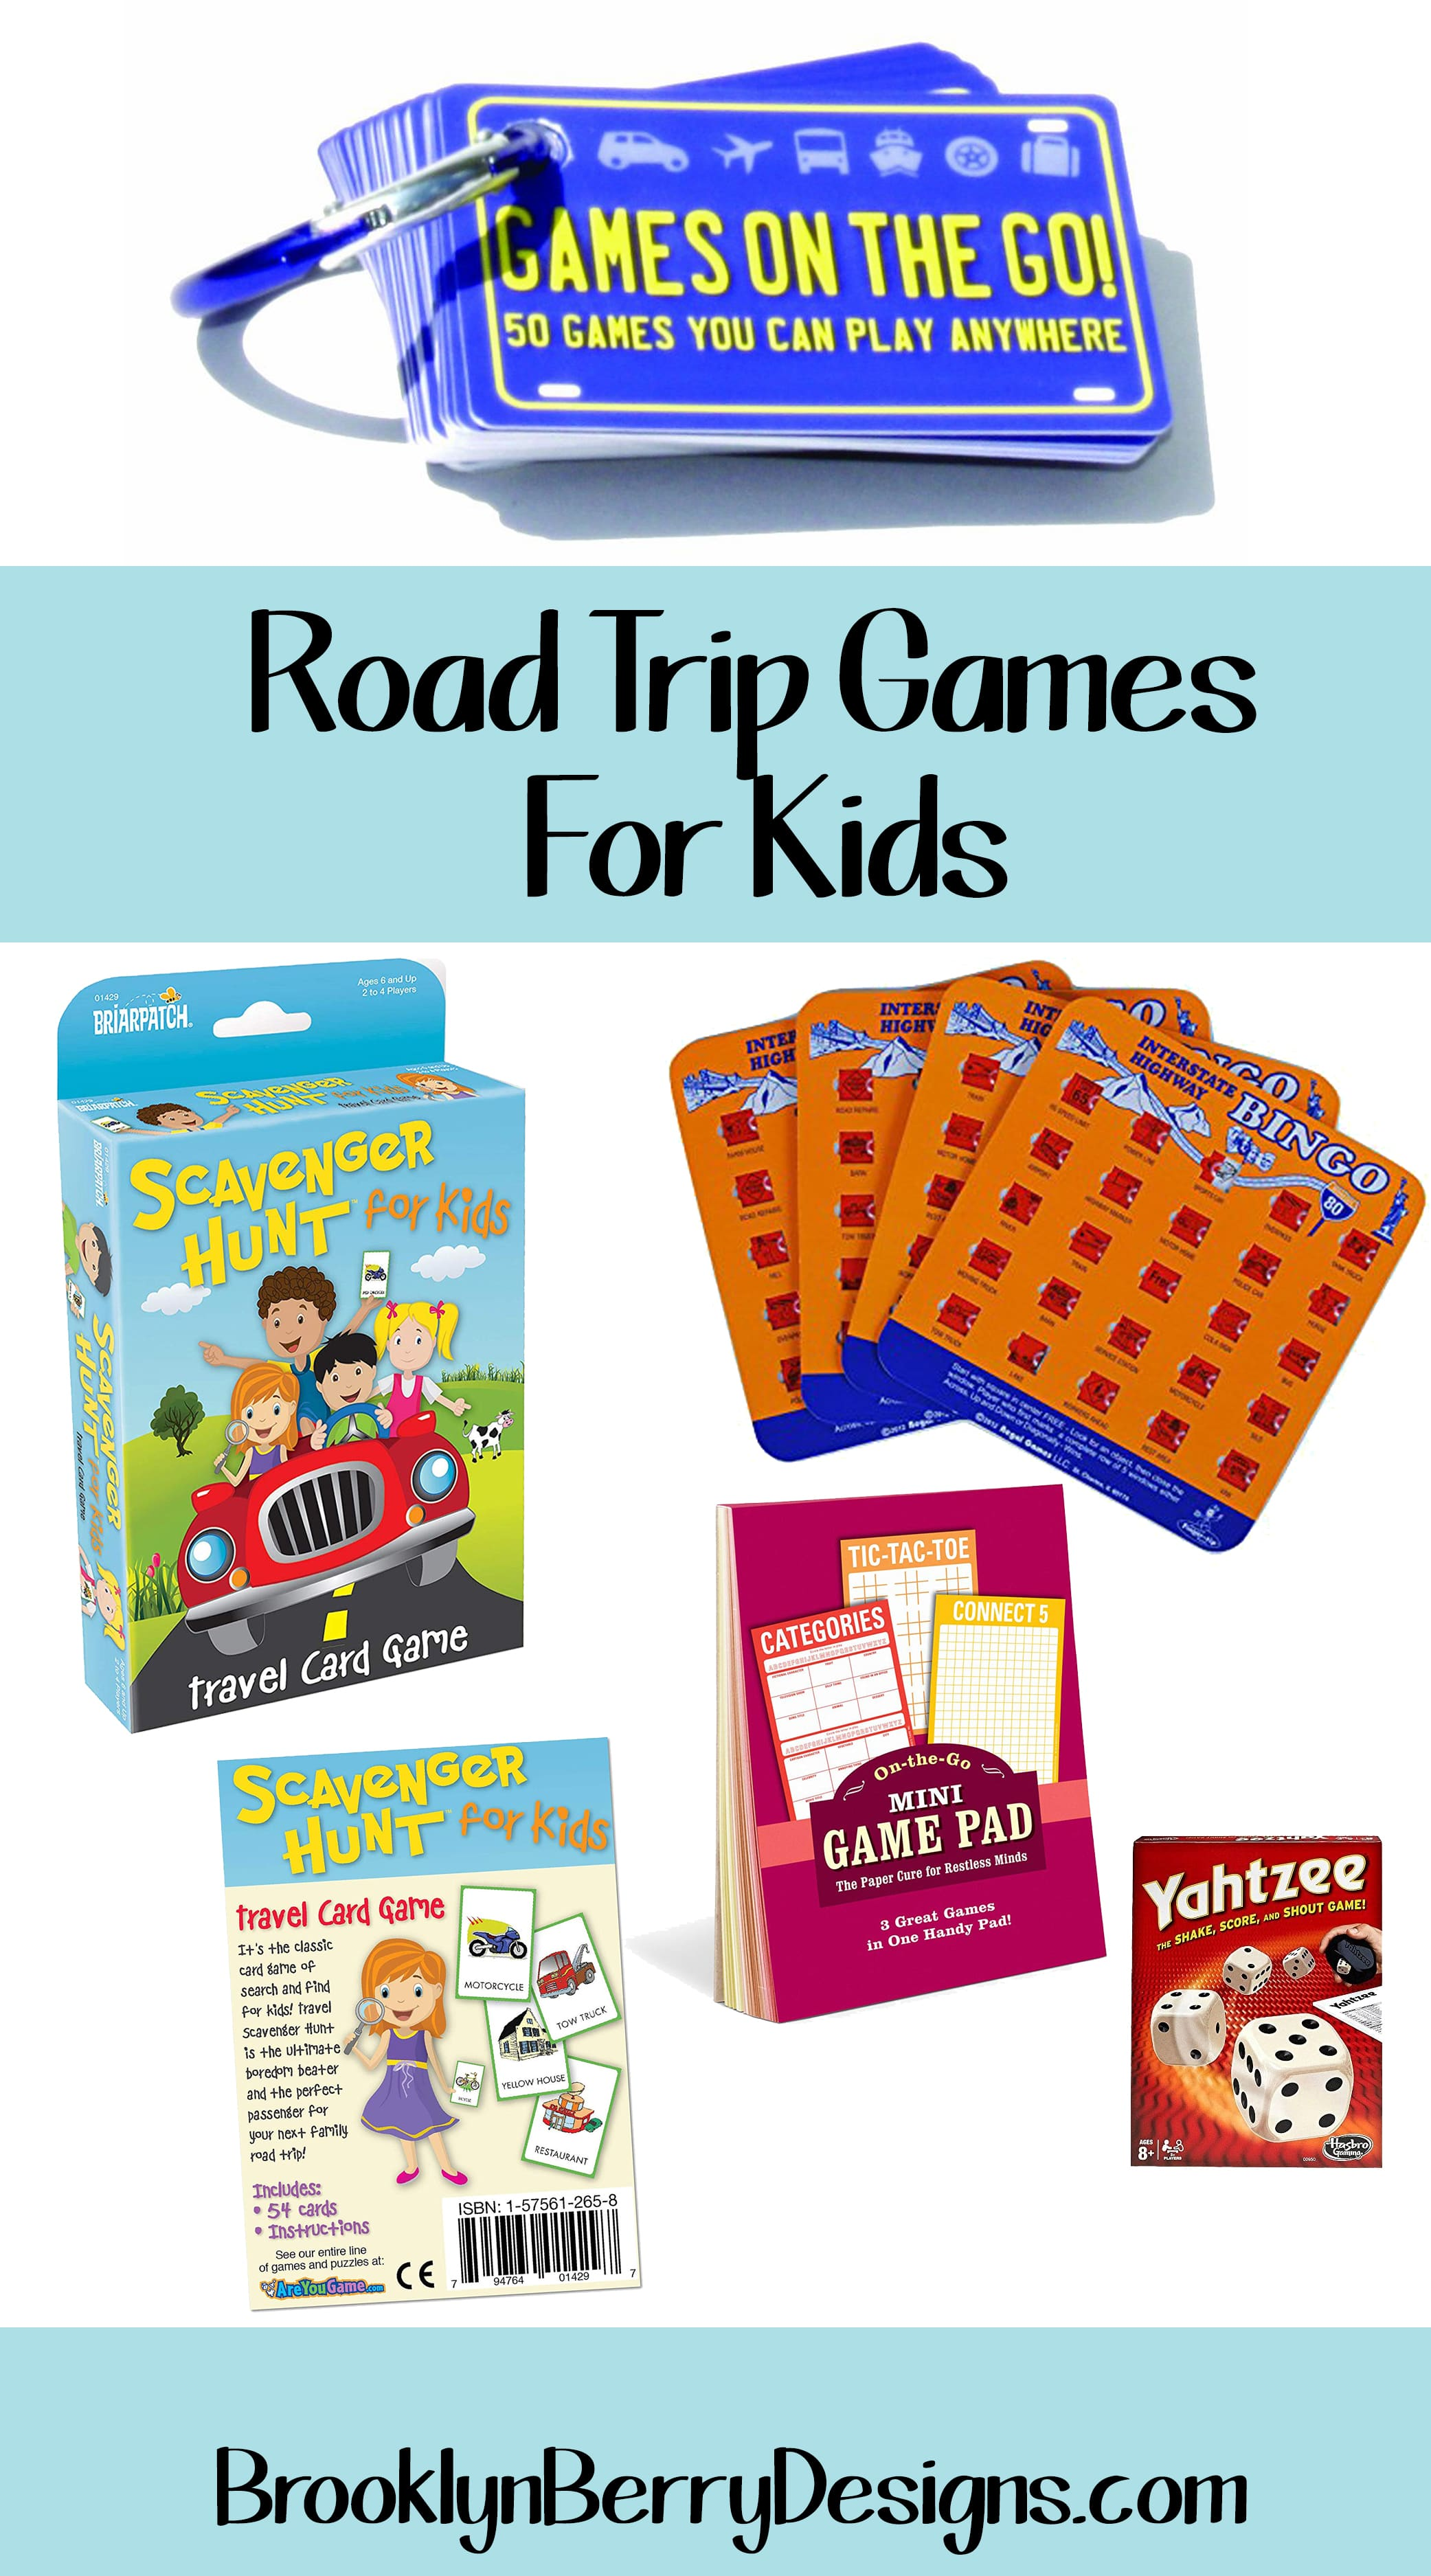 How do you keep kids entertained and happy on a family road trip - because you can only play I Spy for so long. Here are my family's tried and tested recommended best travel games for kids. #familytravel #roadtrip #travelgames #roadtripgames #kidsgames via @brookeberry